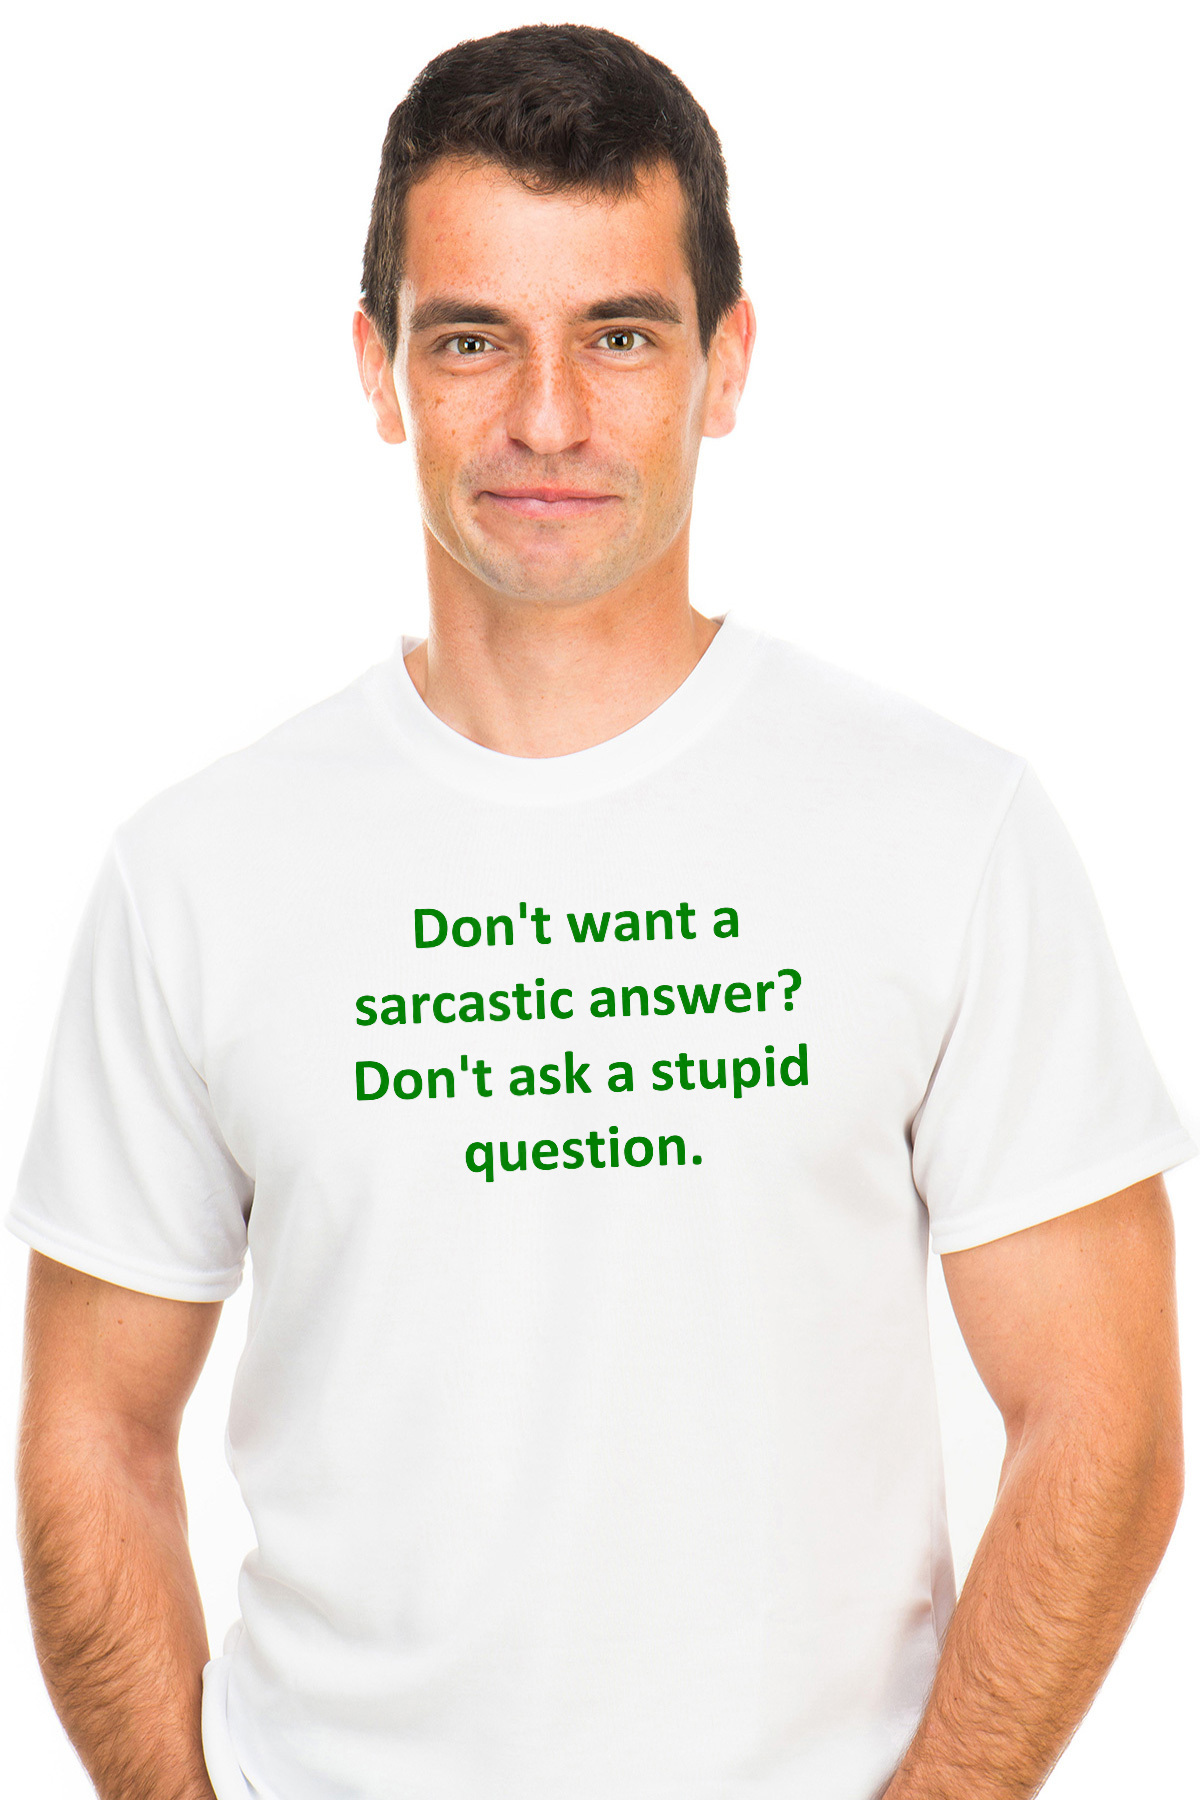 a3320fc68 Don't want a sarcastic answer? Don't ask a stupid question. shirt